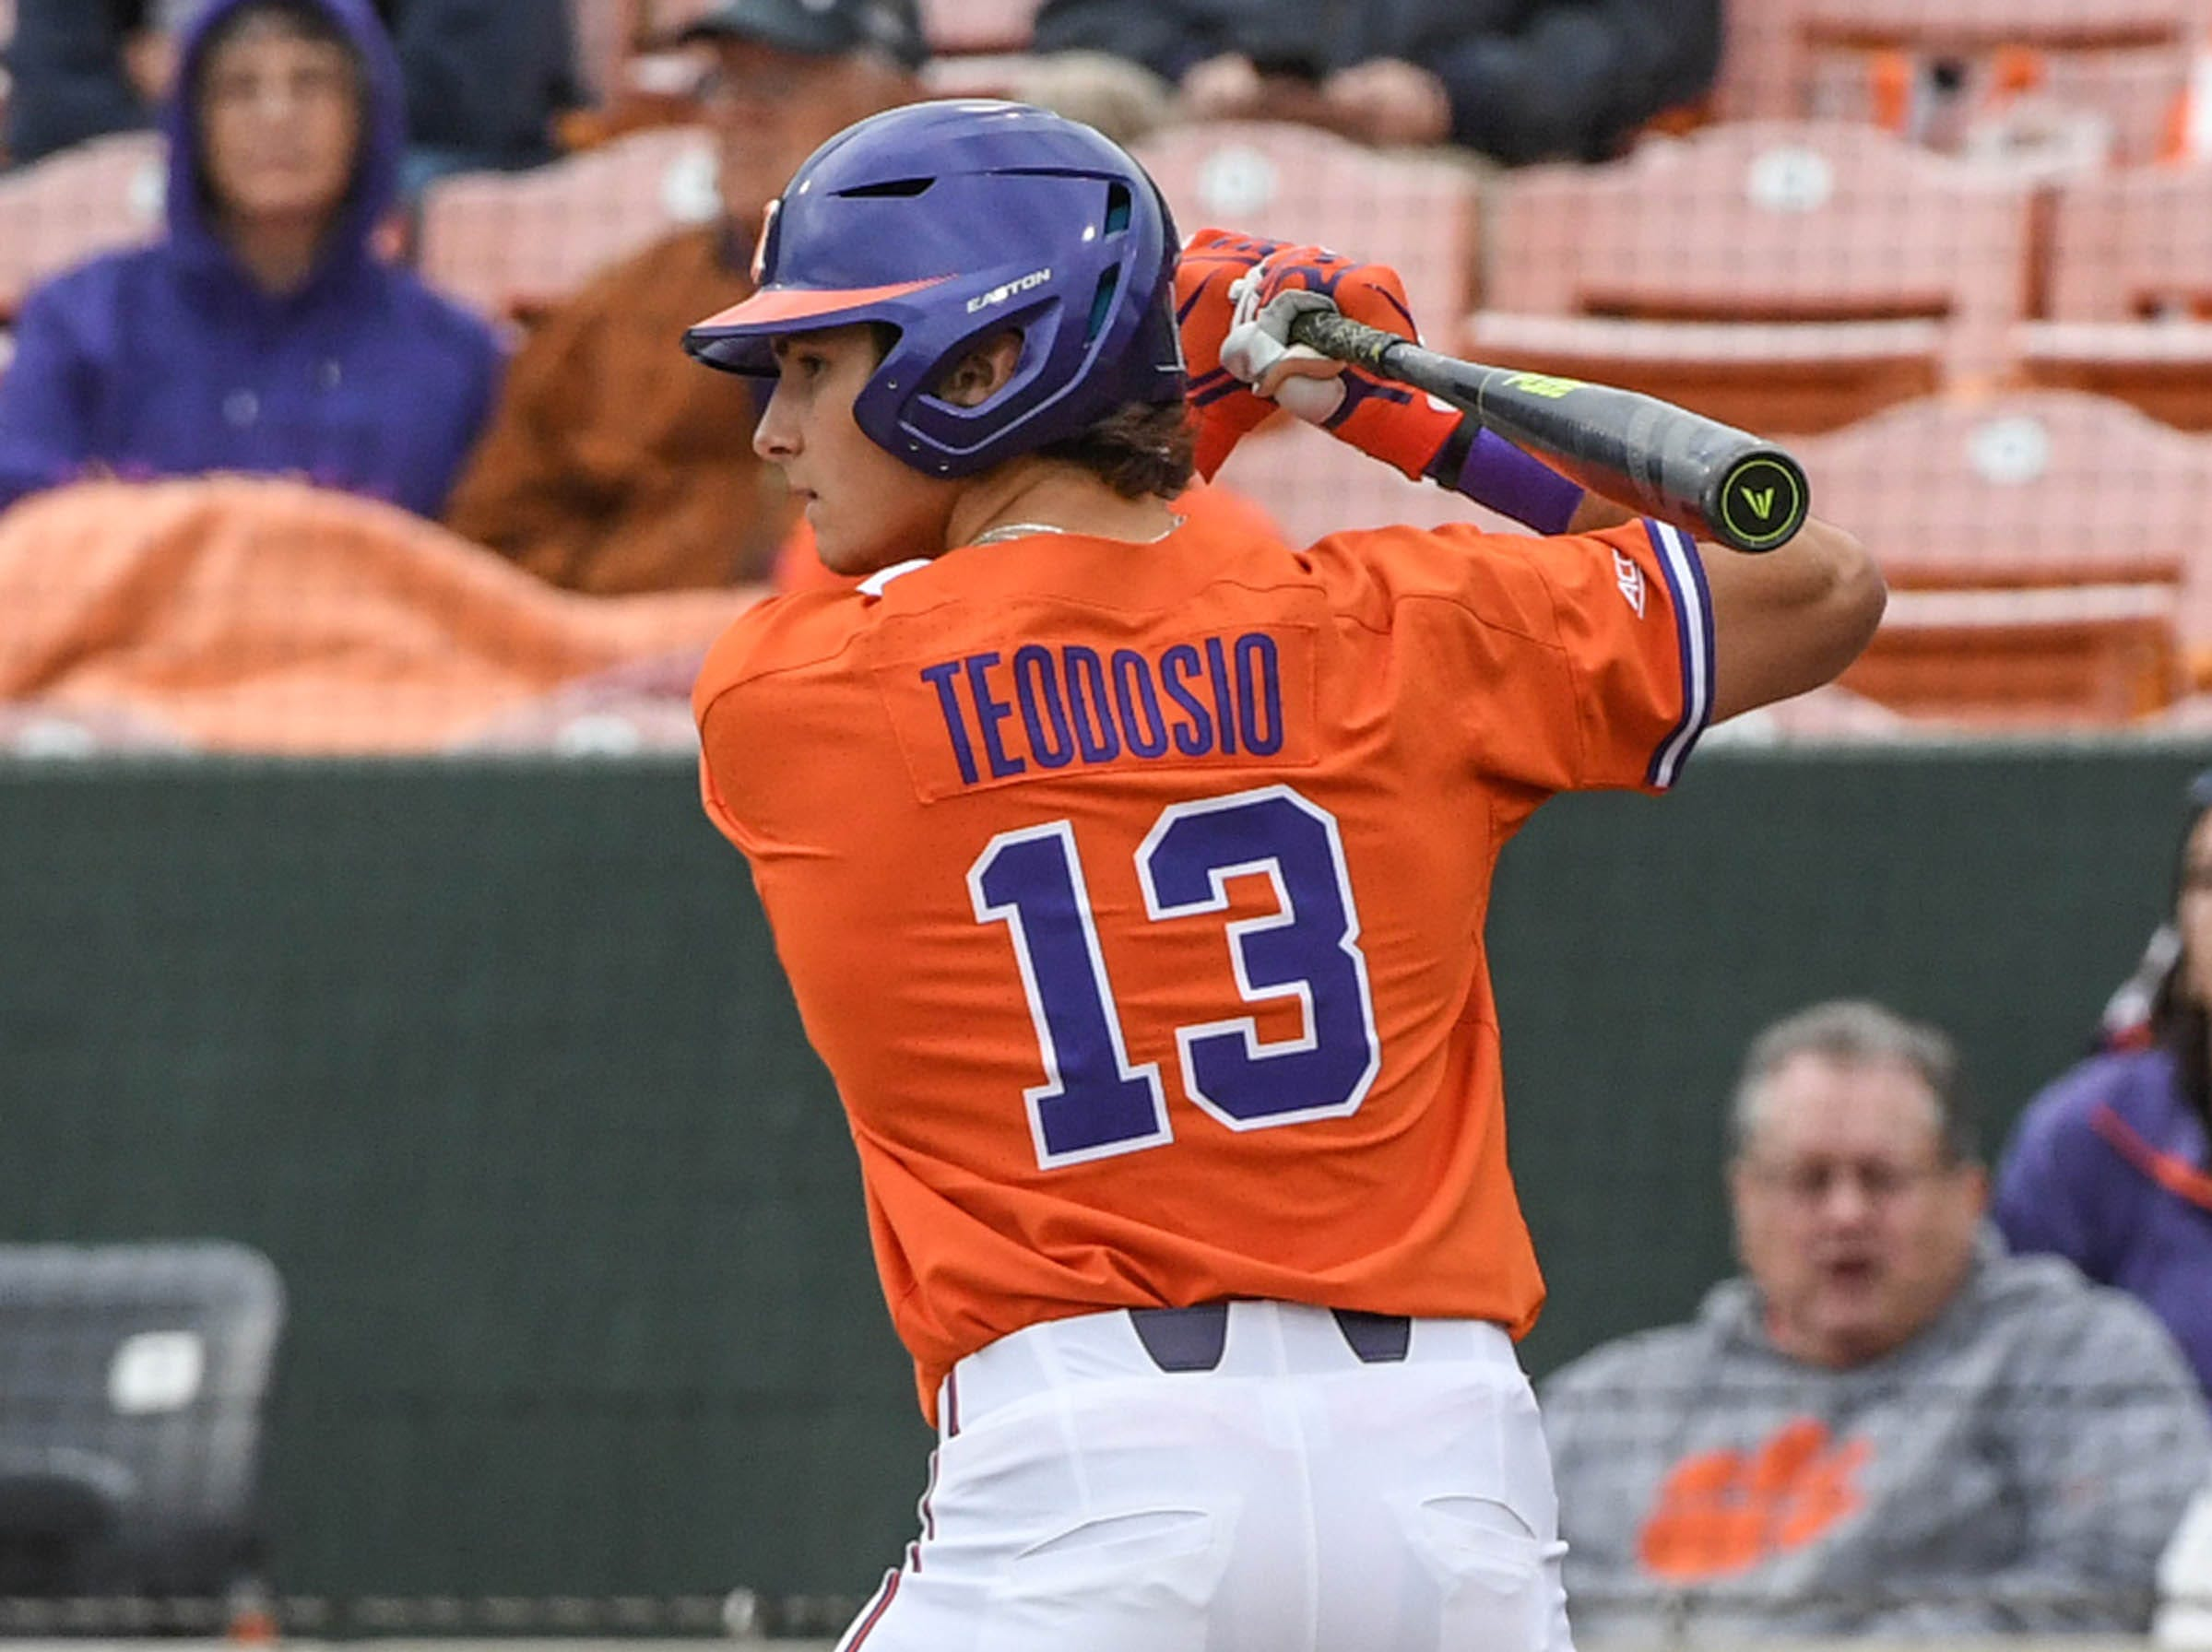 Clemson sophomore Bryce Teodosio(13) swings against South Alabama during the top of the sixth inning at Doug Kingsmore Stadium in Clemson Friday, February 15, 2019.